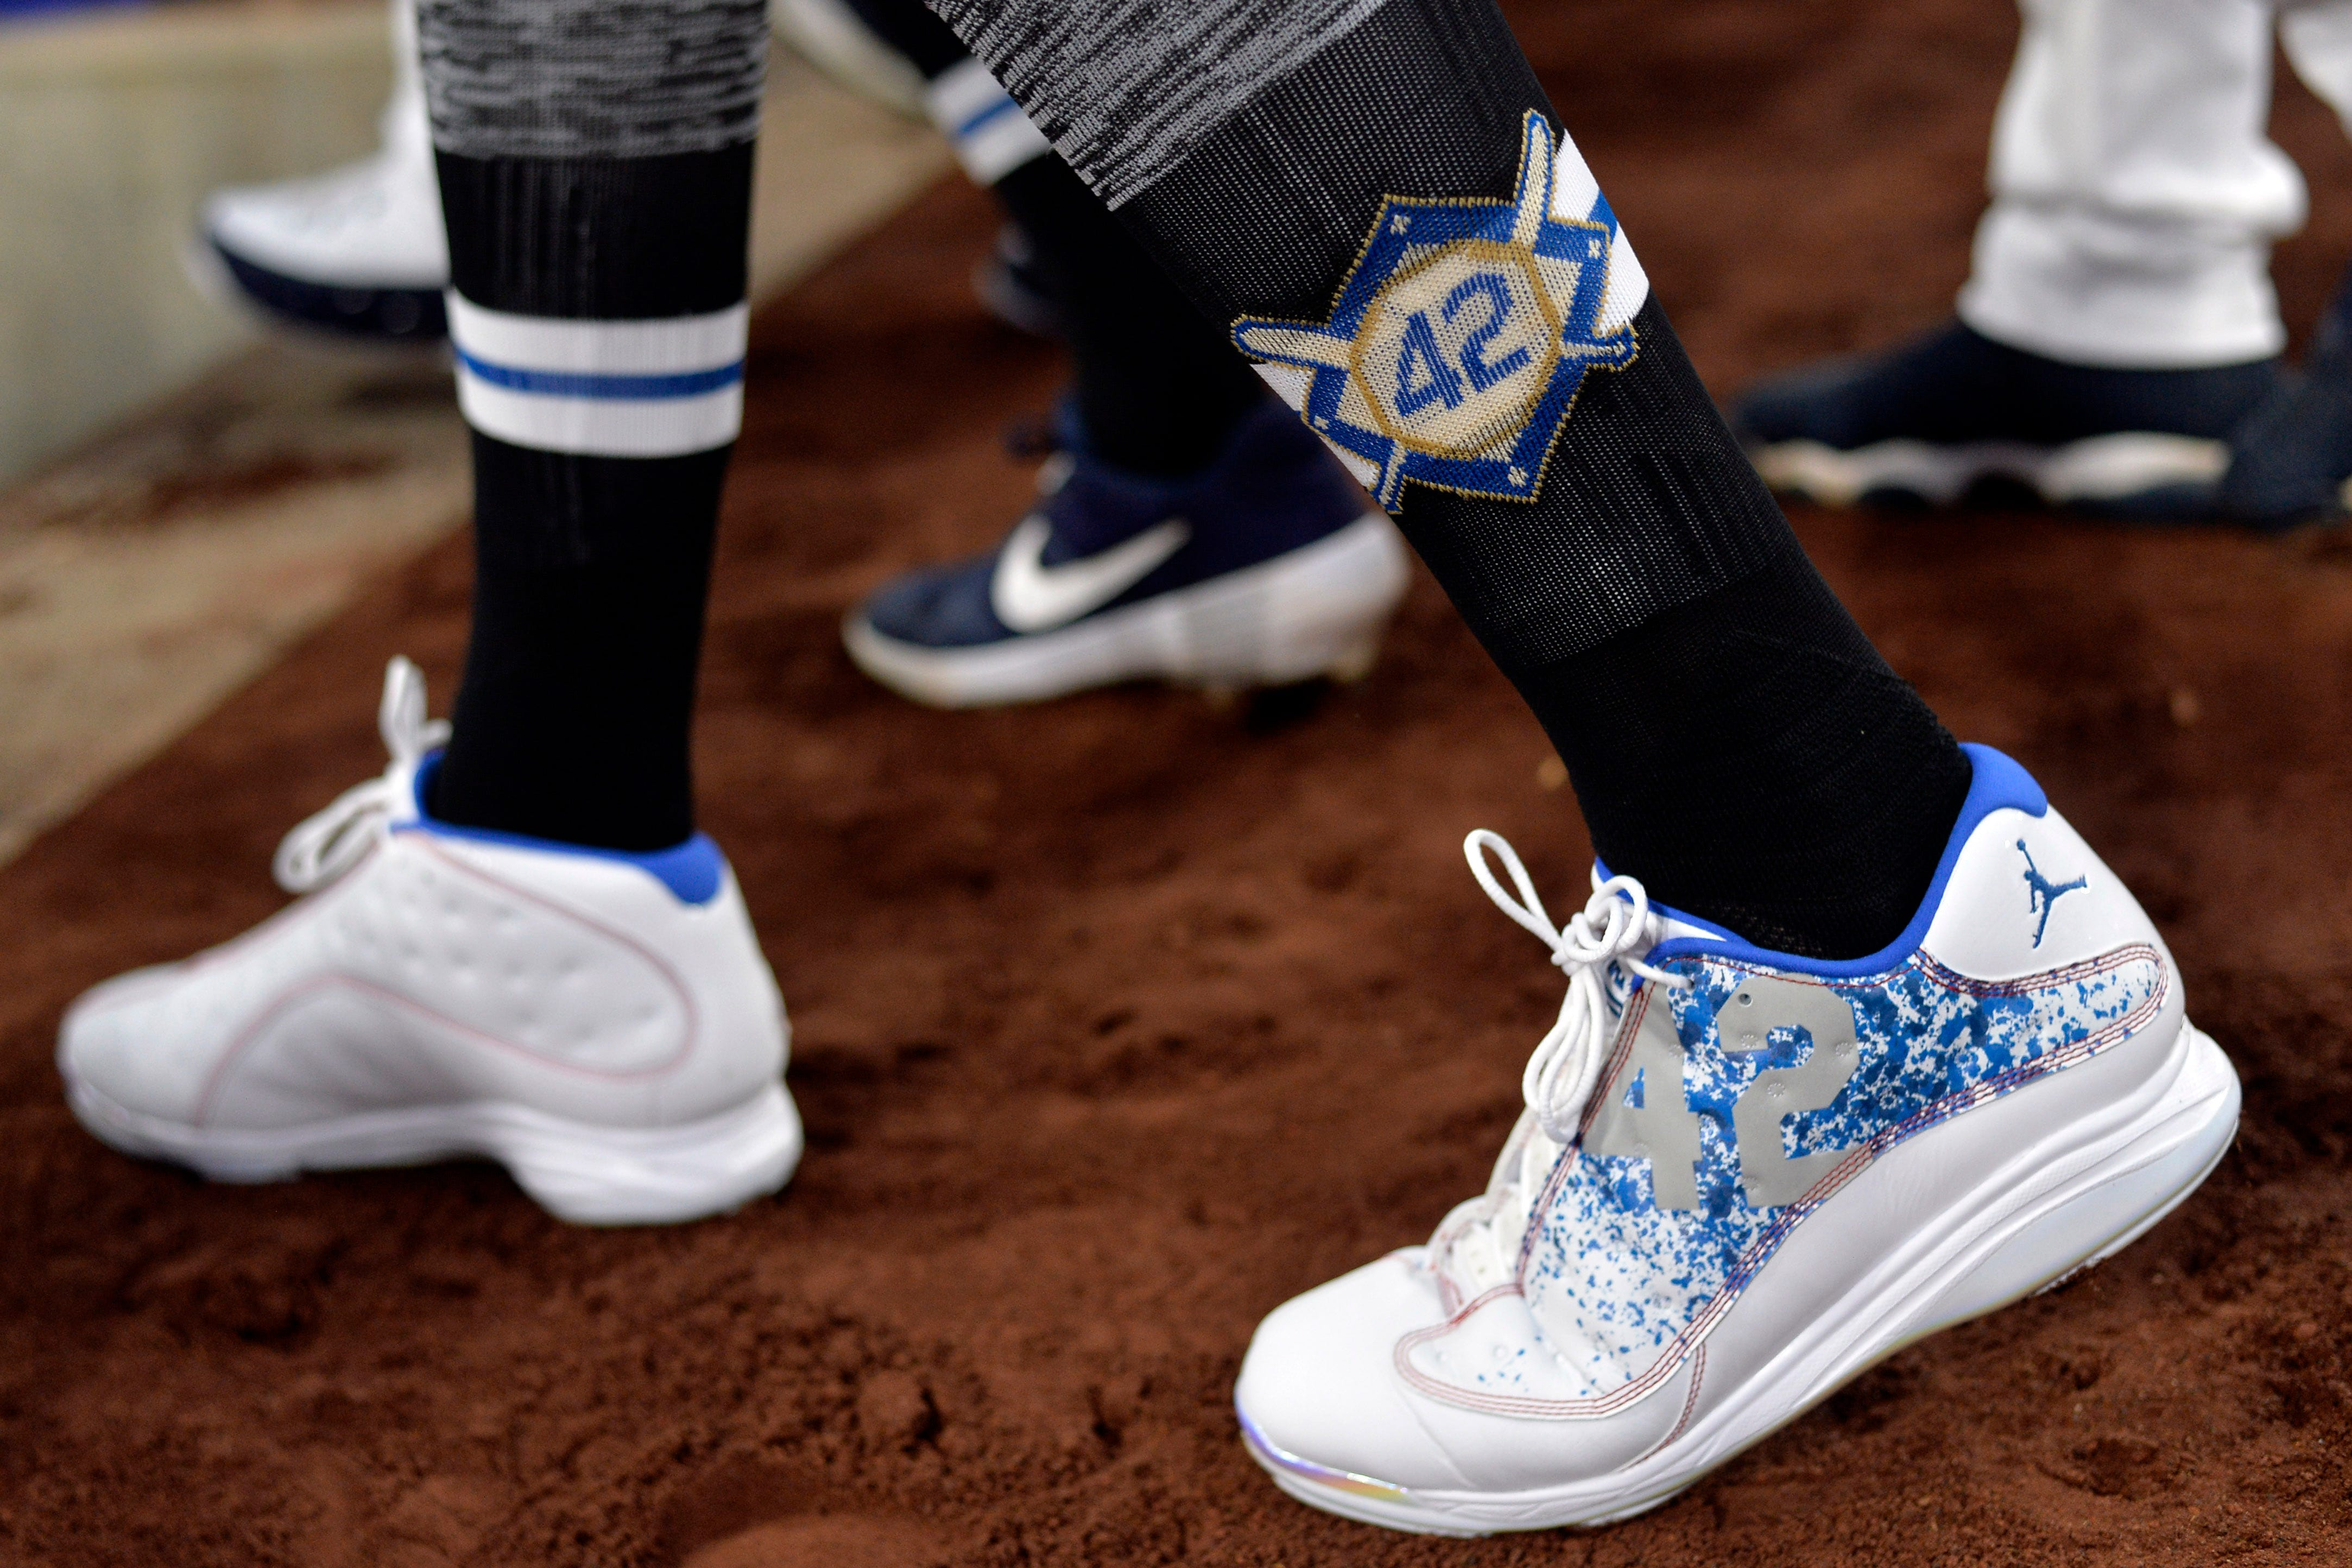 A detailed view of the cleats worn by San Diego Padres third baseman Manny Machado before the game against the Colorado Rockies at Petco Park. - Rays Pitcher Breaks Toe In Freak Accident